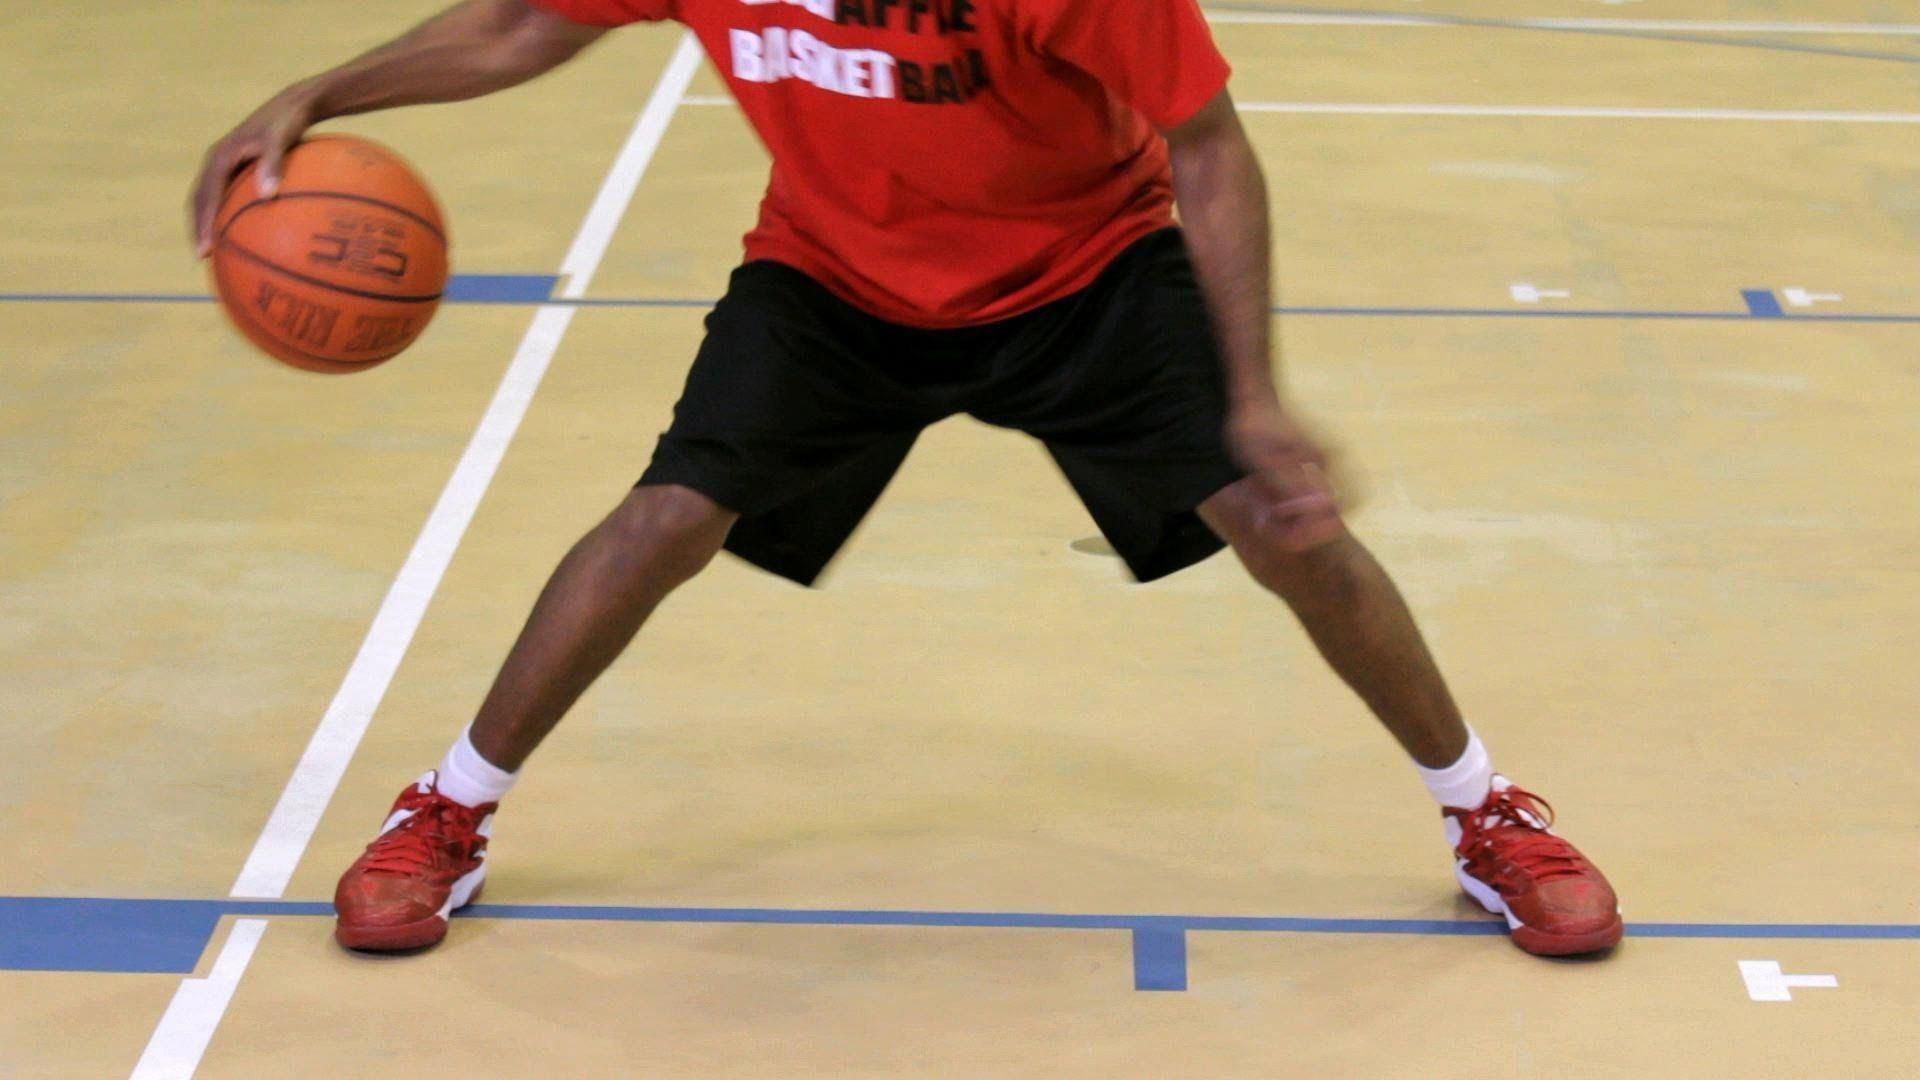 Basketball Training Techniques Basketball workouts